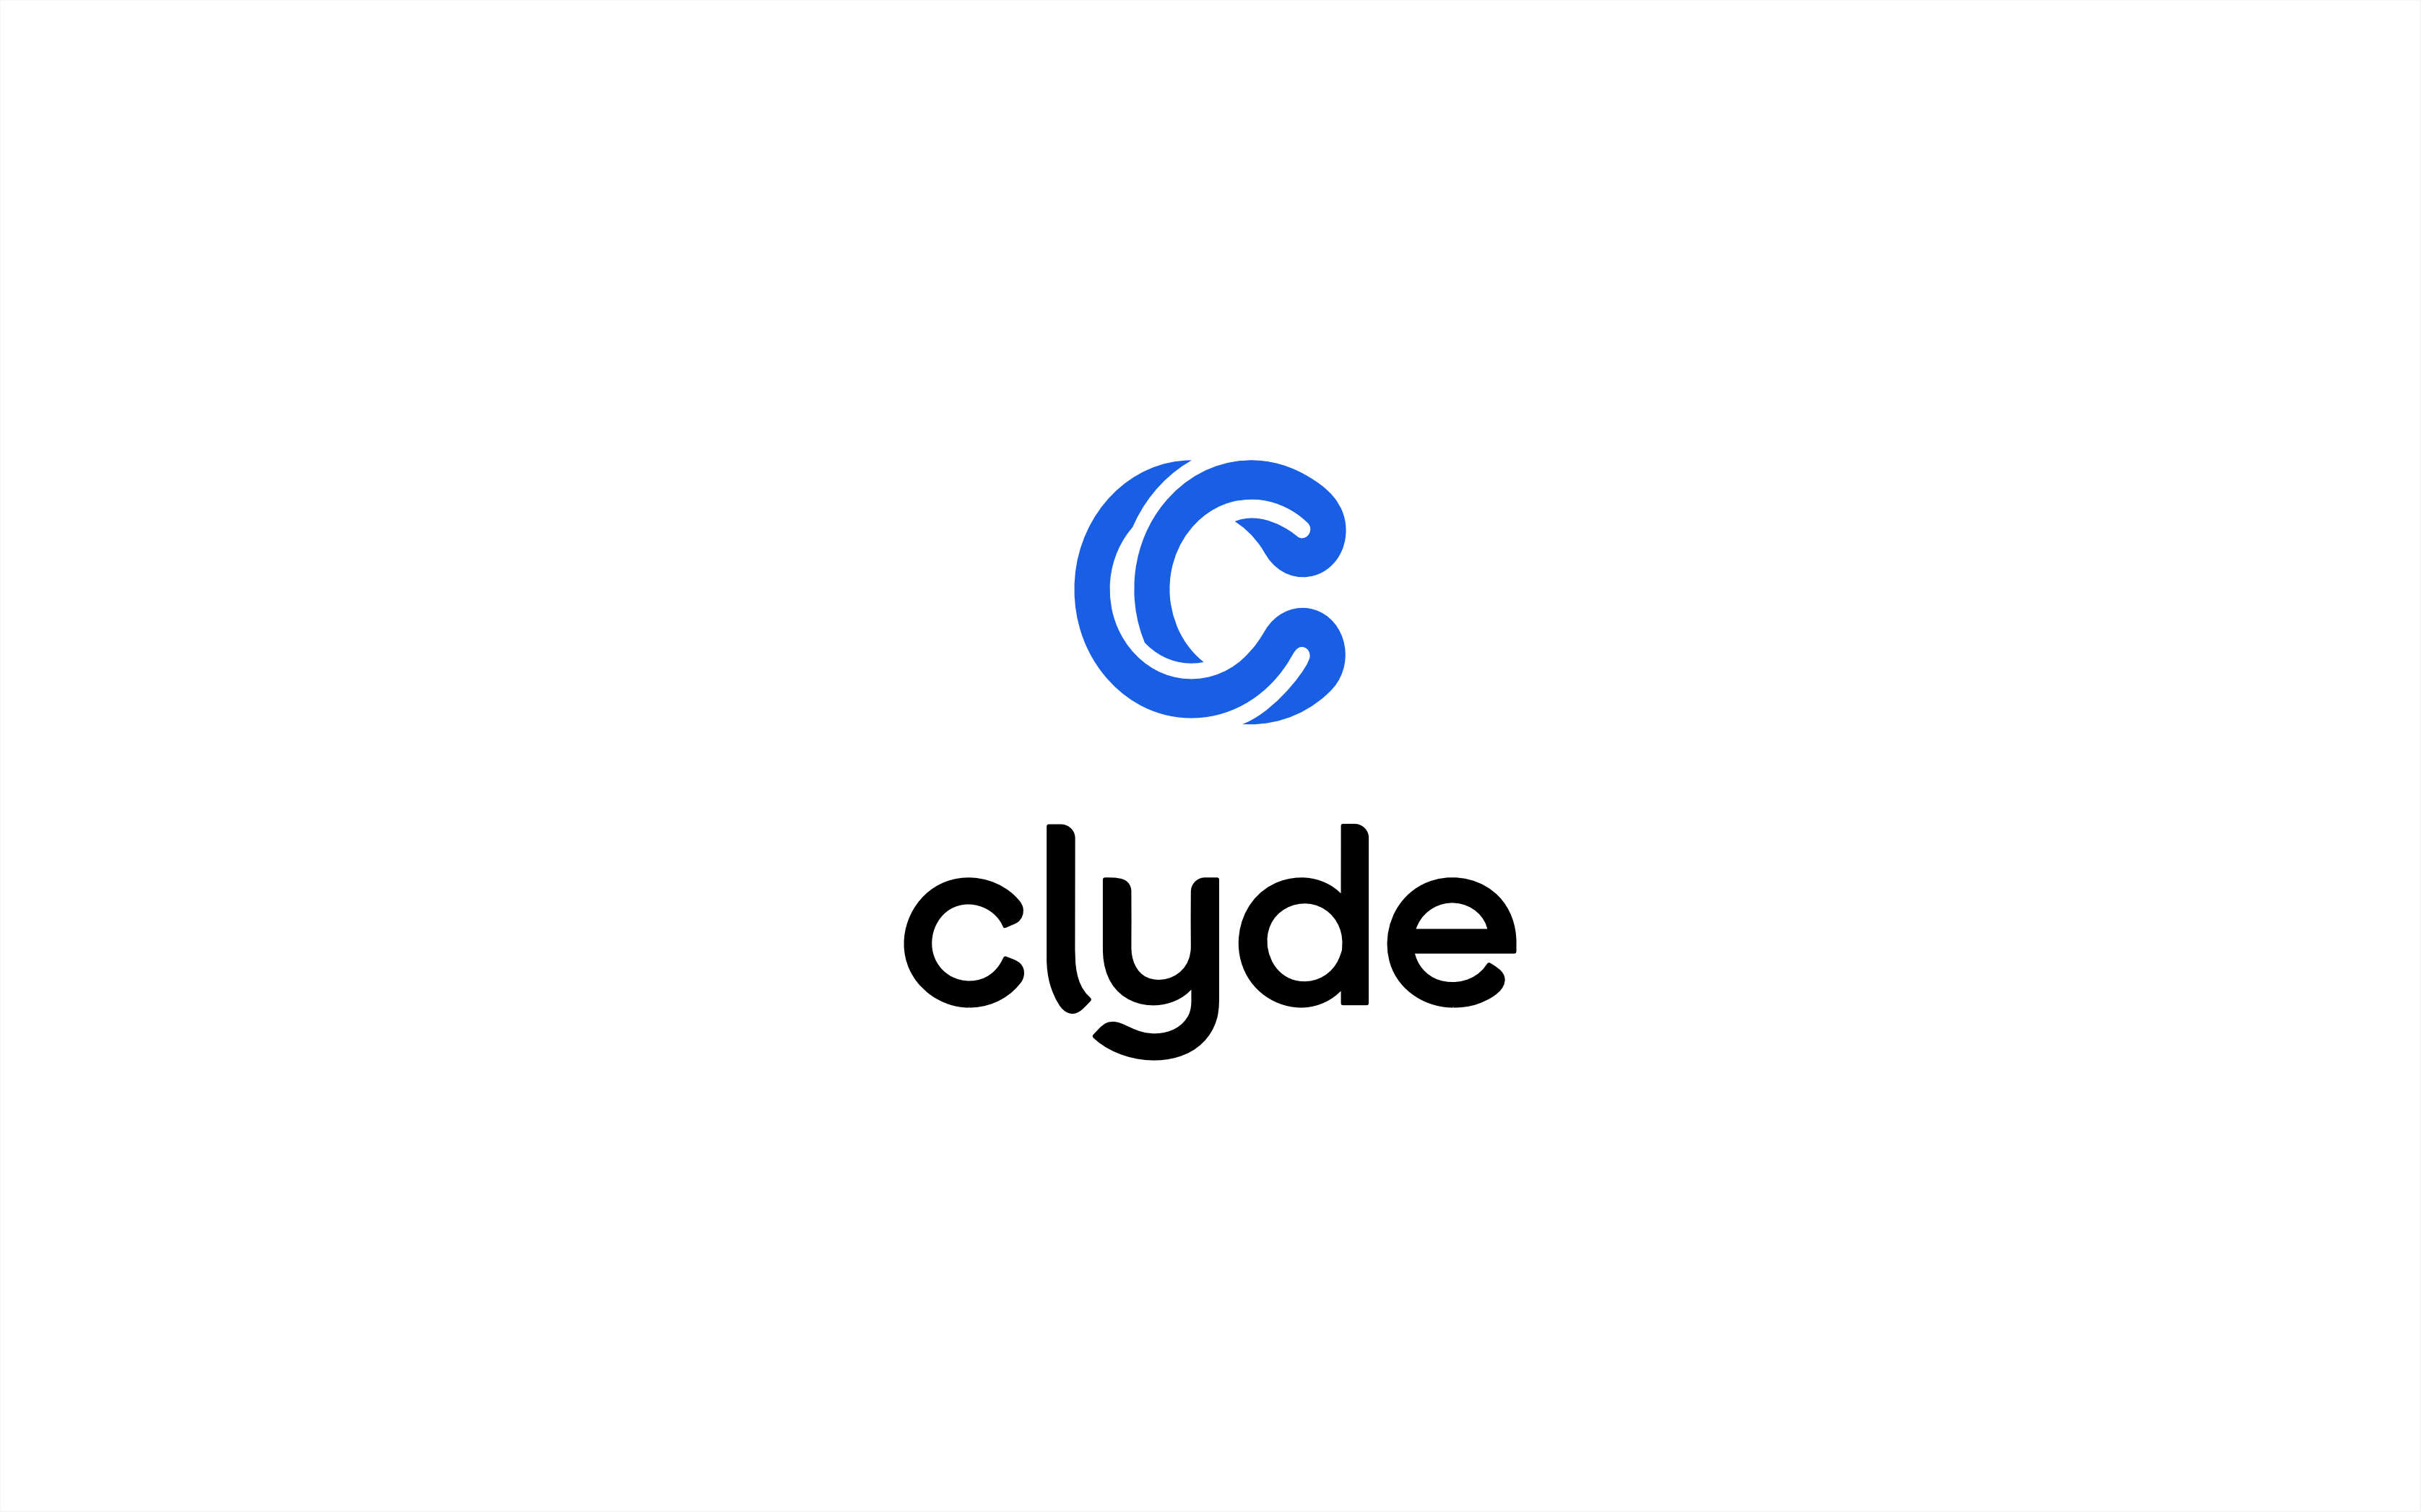 Clyde logo on white color field.